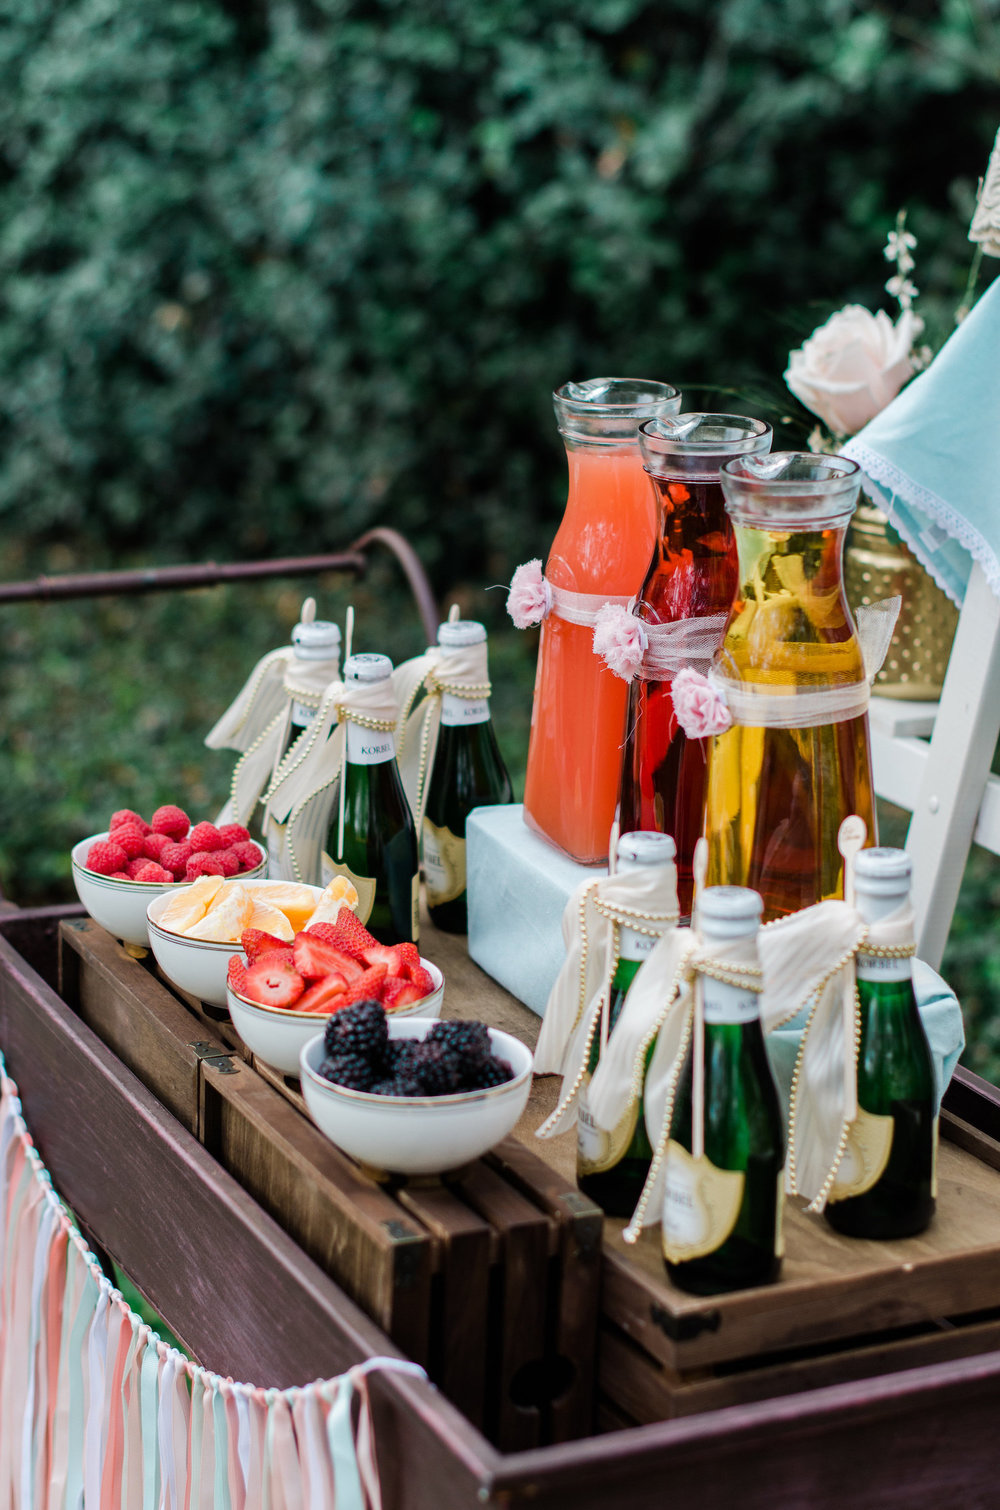 Beautiful Mimosa Station set up on a darling vintage serving cart with fresh berries — Click to see 8 DIY Wedding Ideas for a Springtime Bridal Shower Brunch — Part of the 37 Creative DIY Wedding Ideas for Spring as seen on www.BrendasWeddingBlog.com